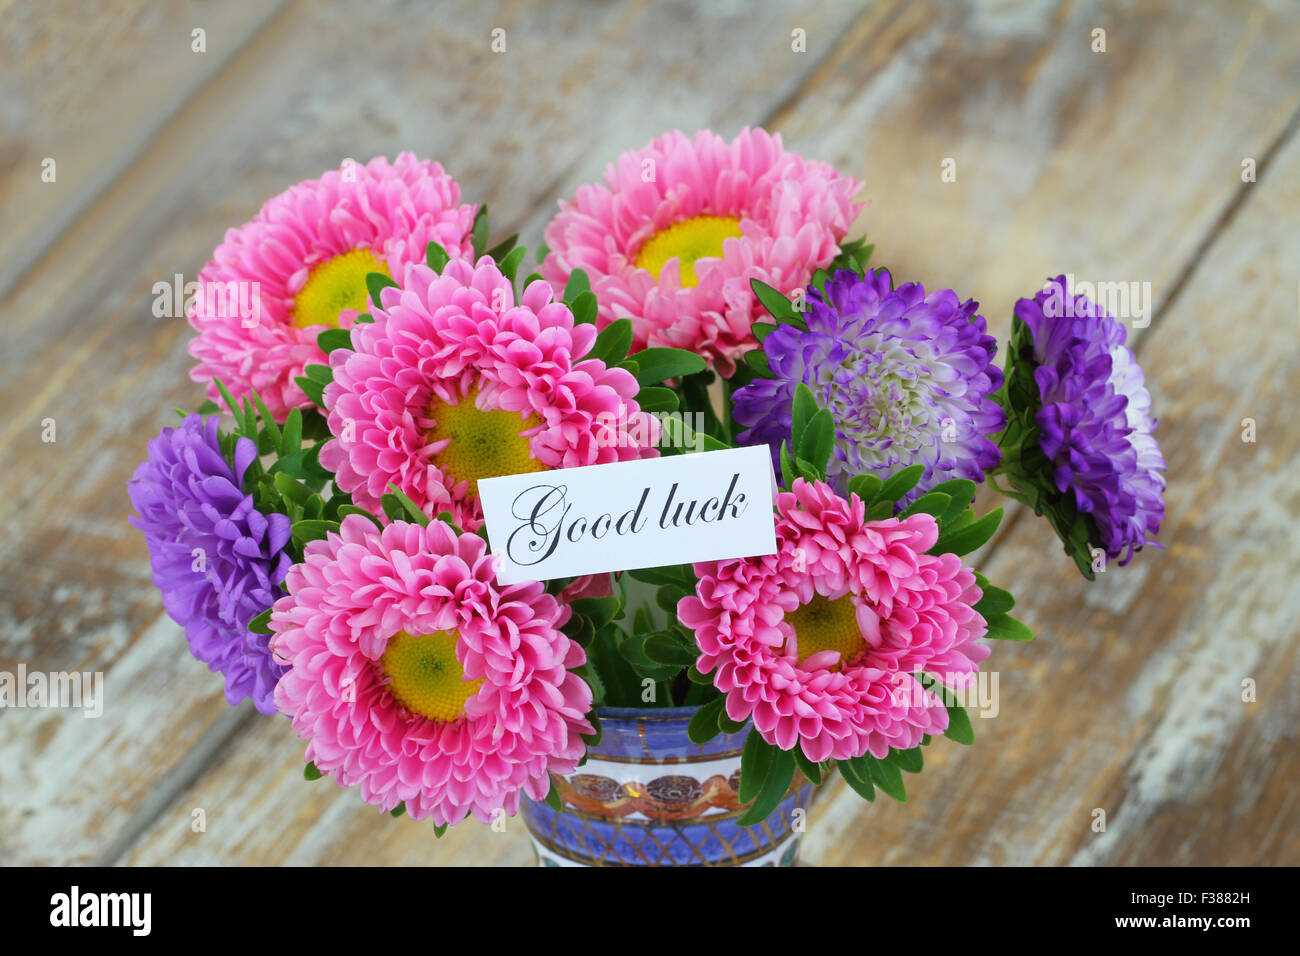 Good luck card with colorful aster flowers bouquet on rustic wooden stock photo royalty free - Flowers good luck bridal bouquet ...